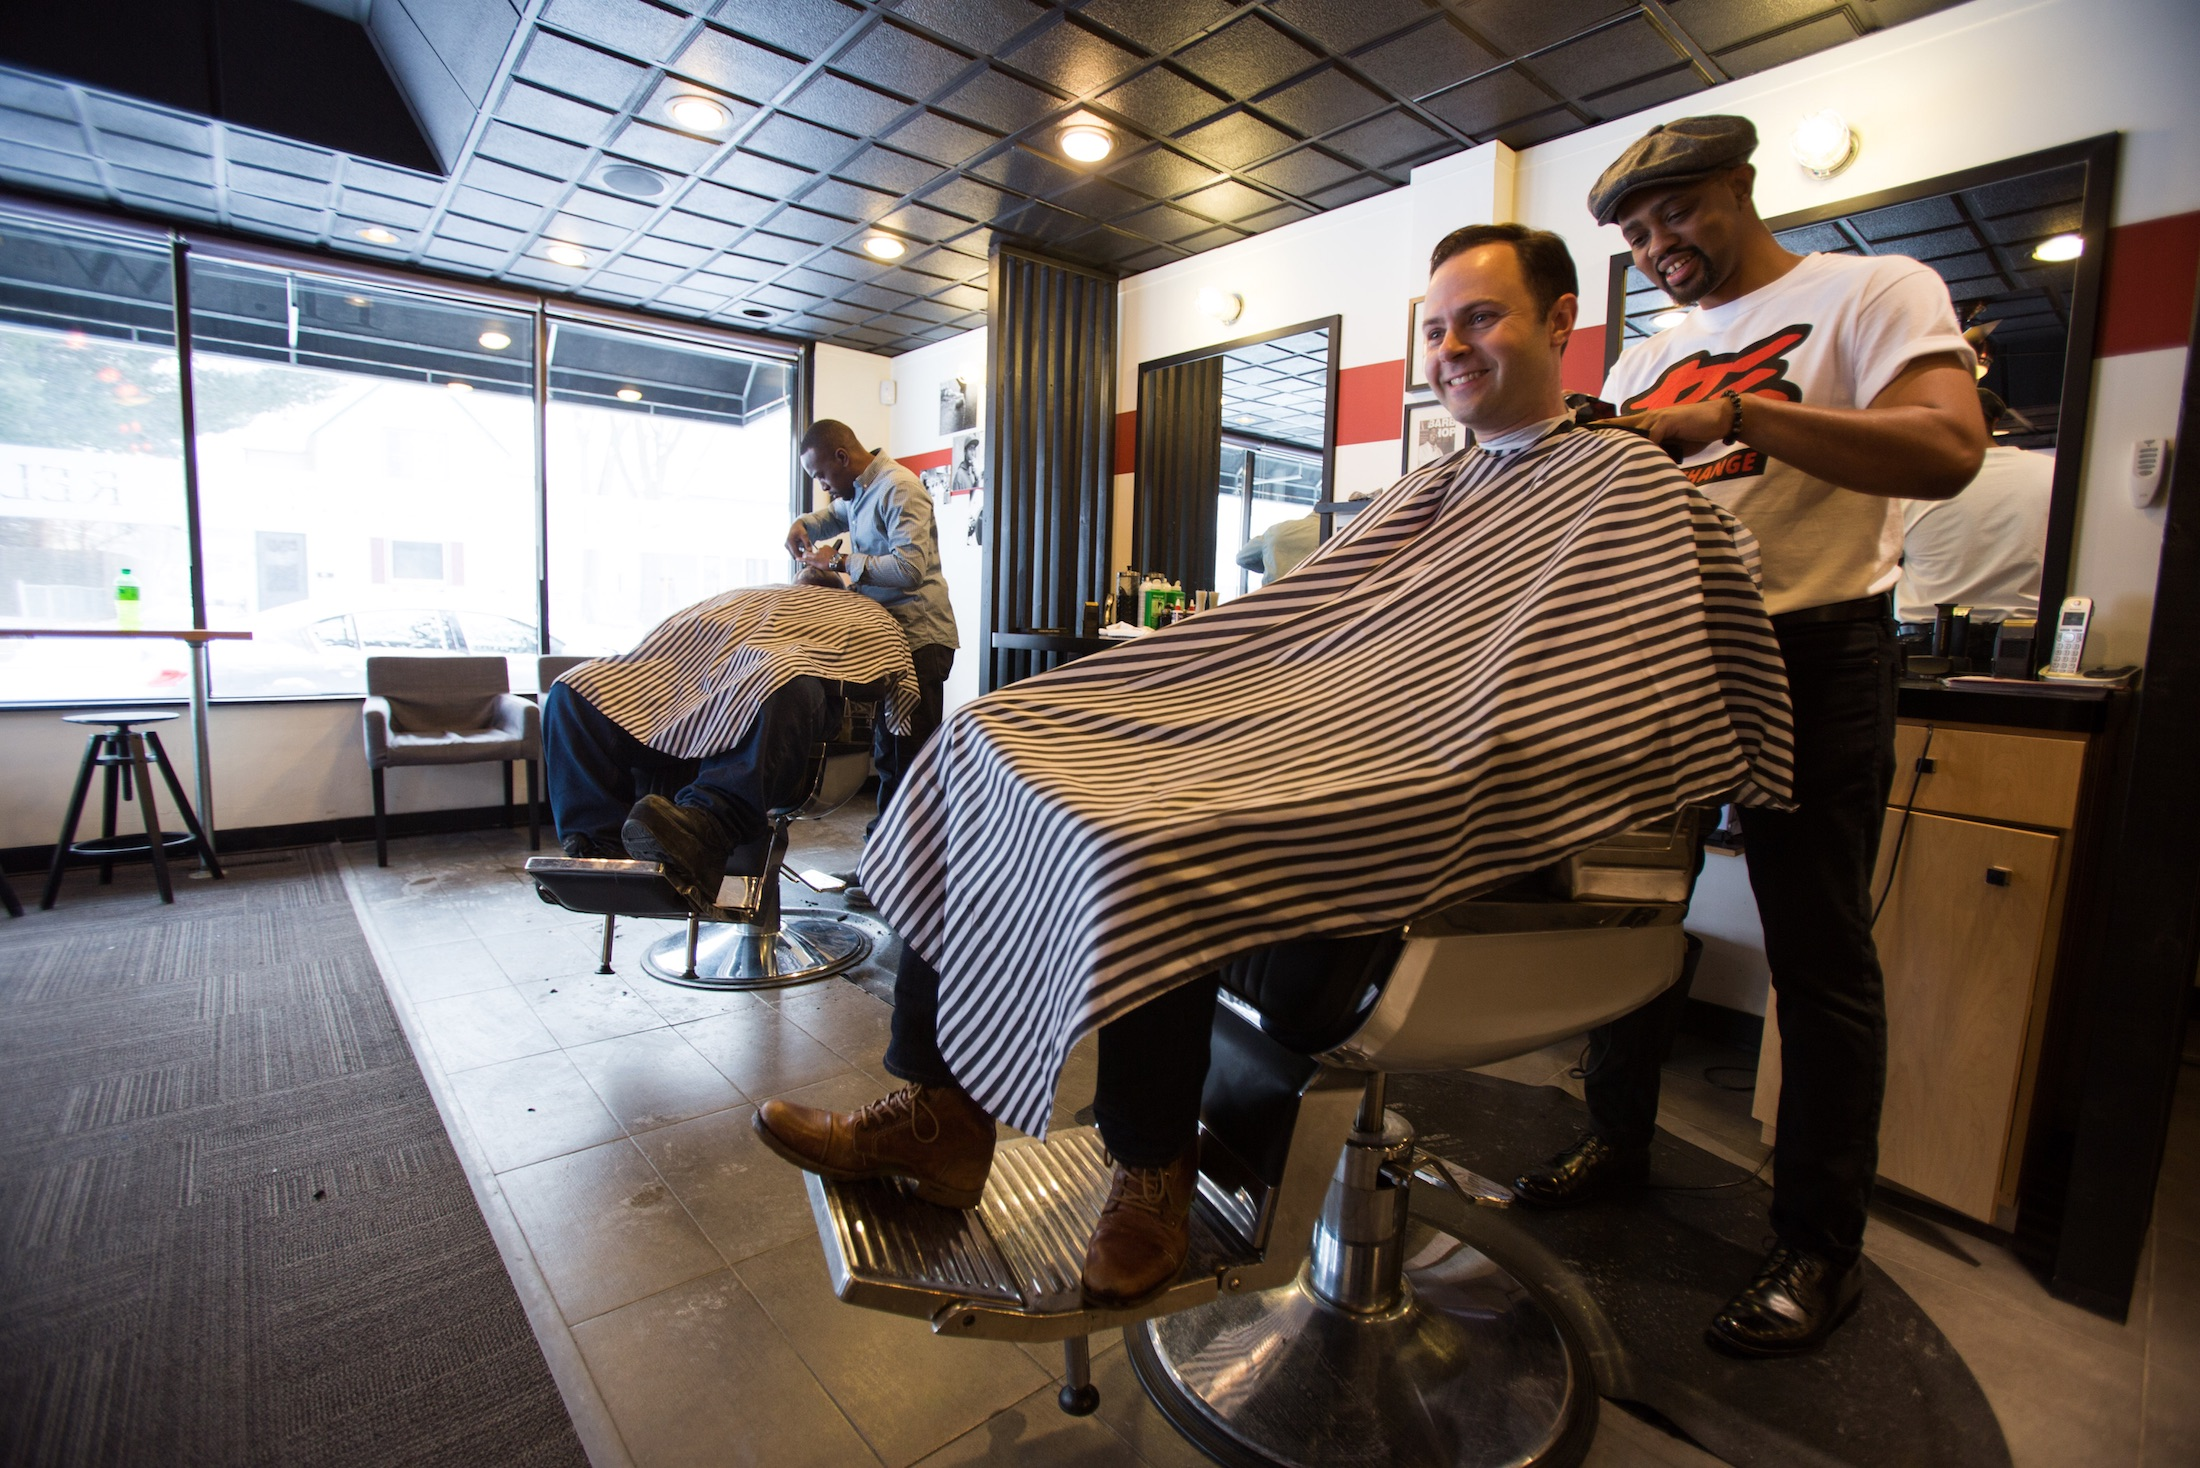 Can a haircut change the world?